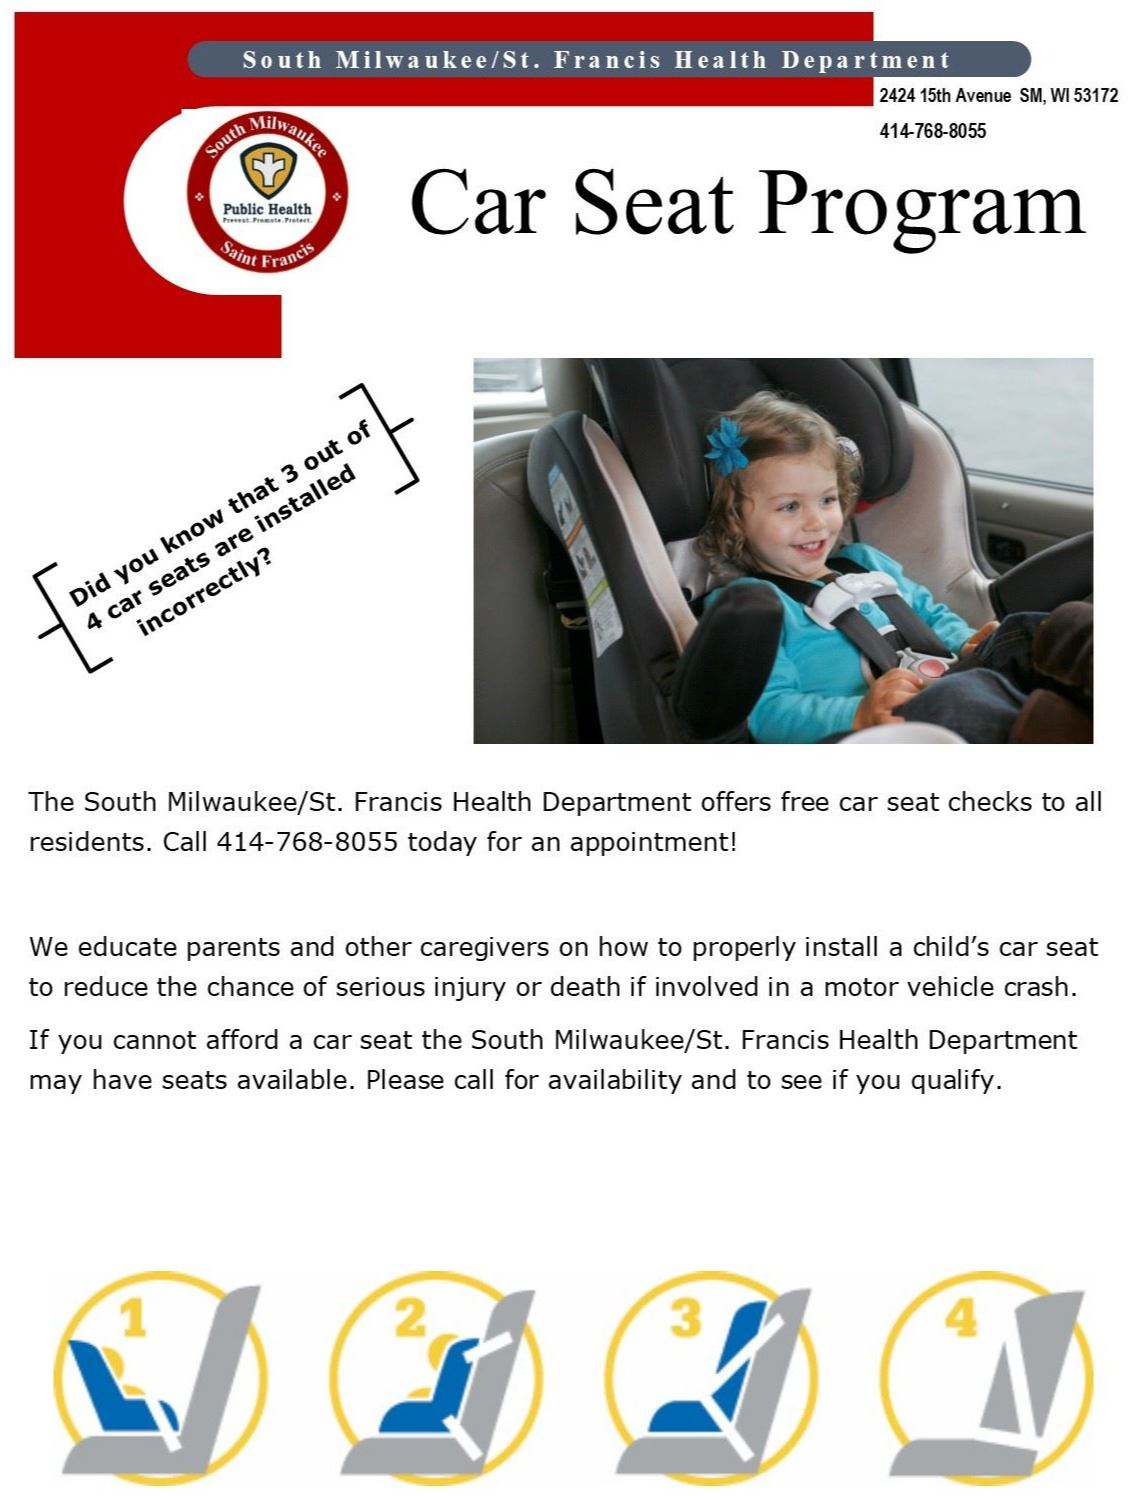 Car Seat Program flyer - SMSF 1.13.2020